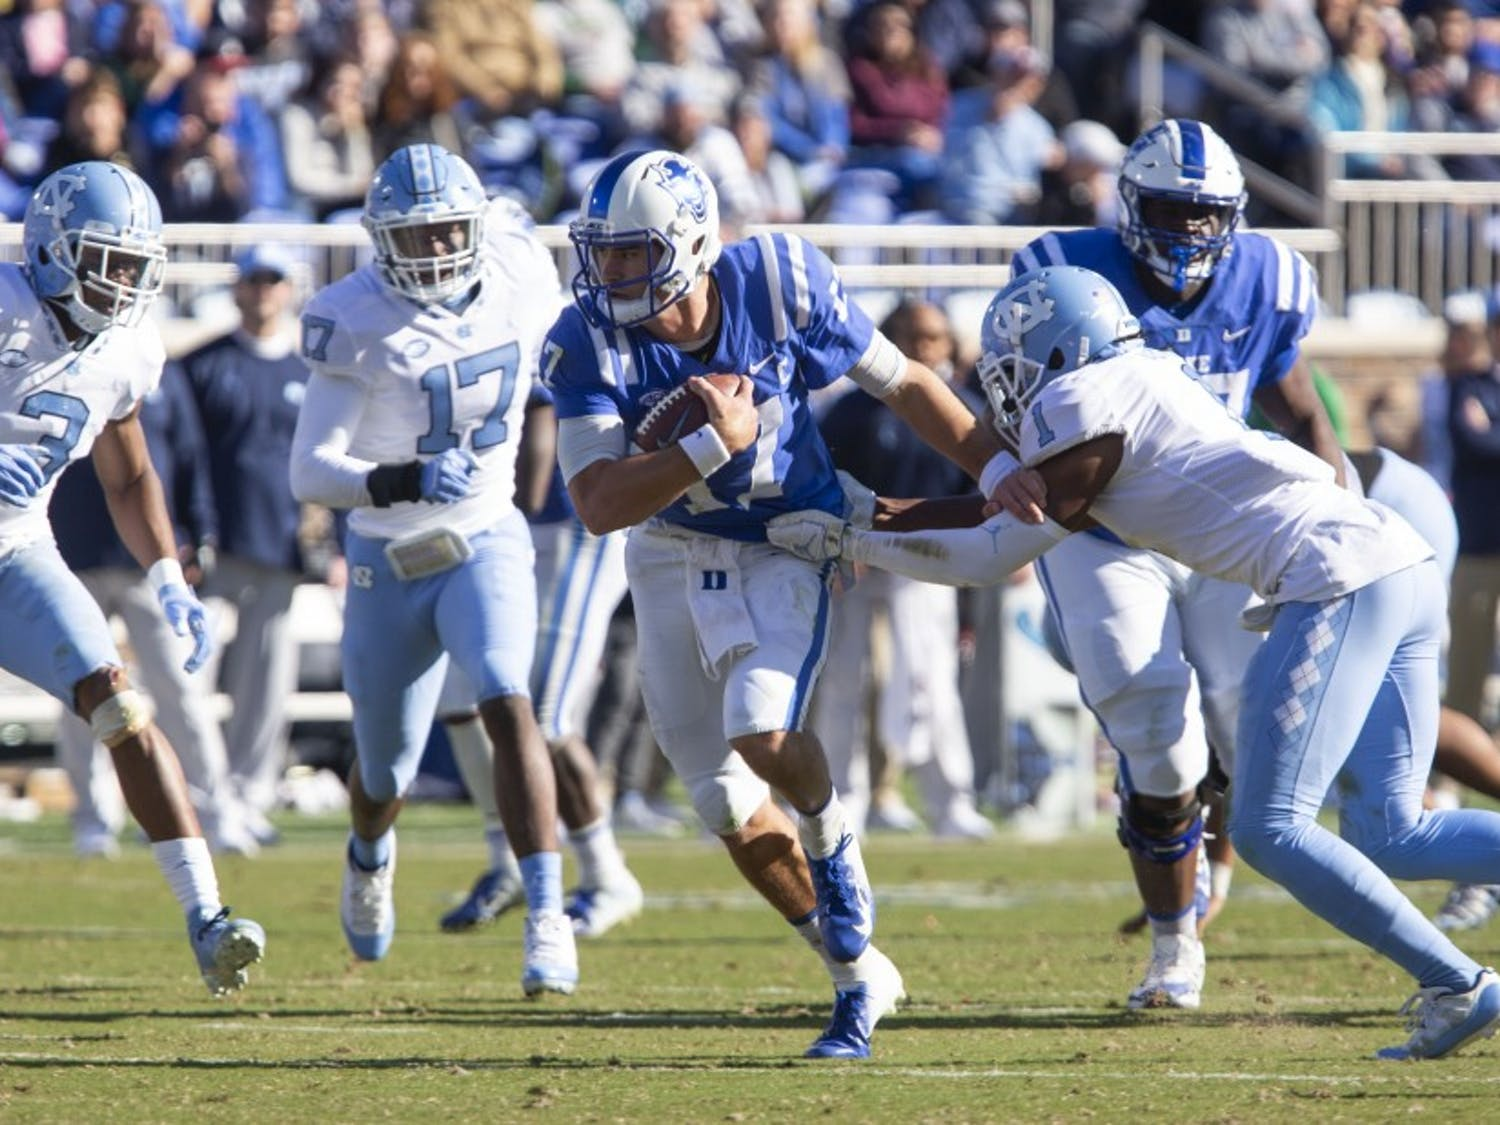 Daniel Jones has impressed with his ability to dominate both in the air and on the ground.